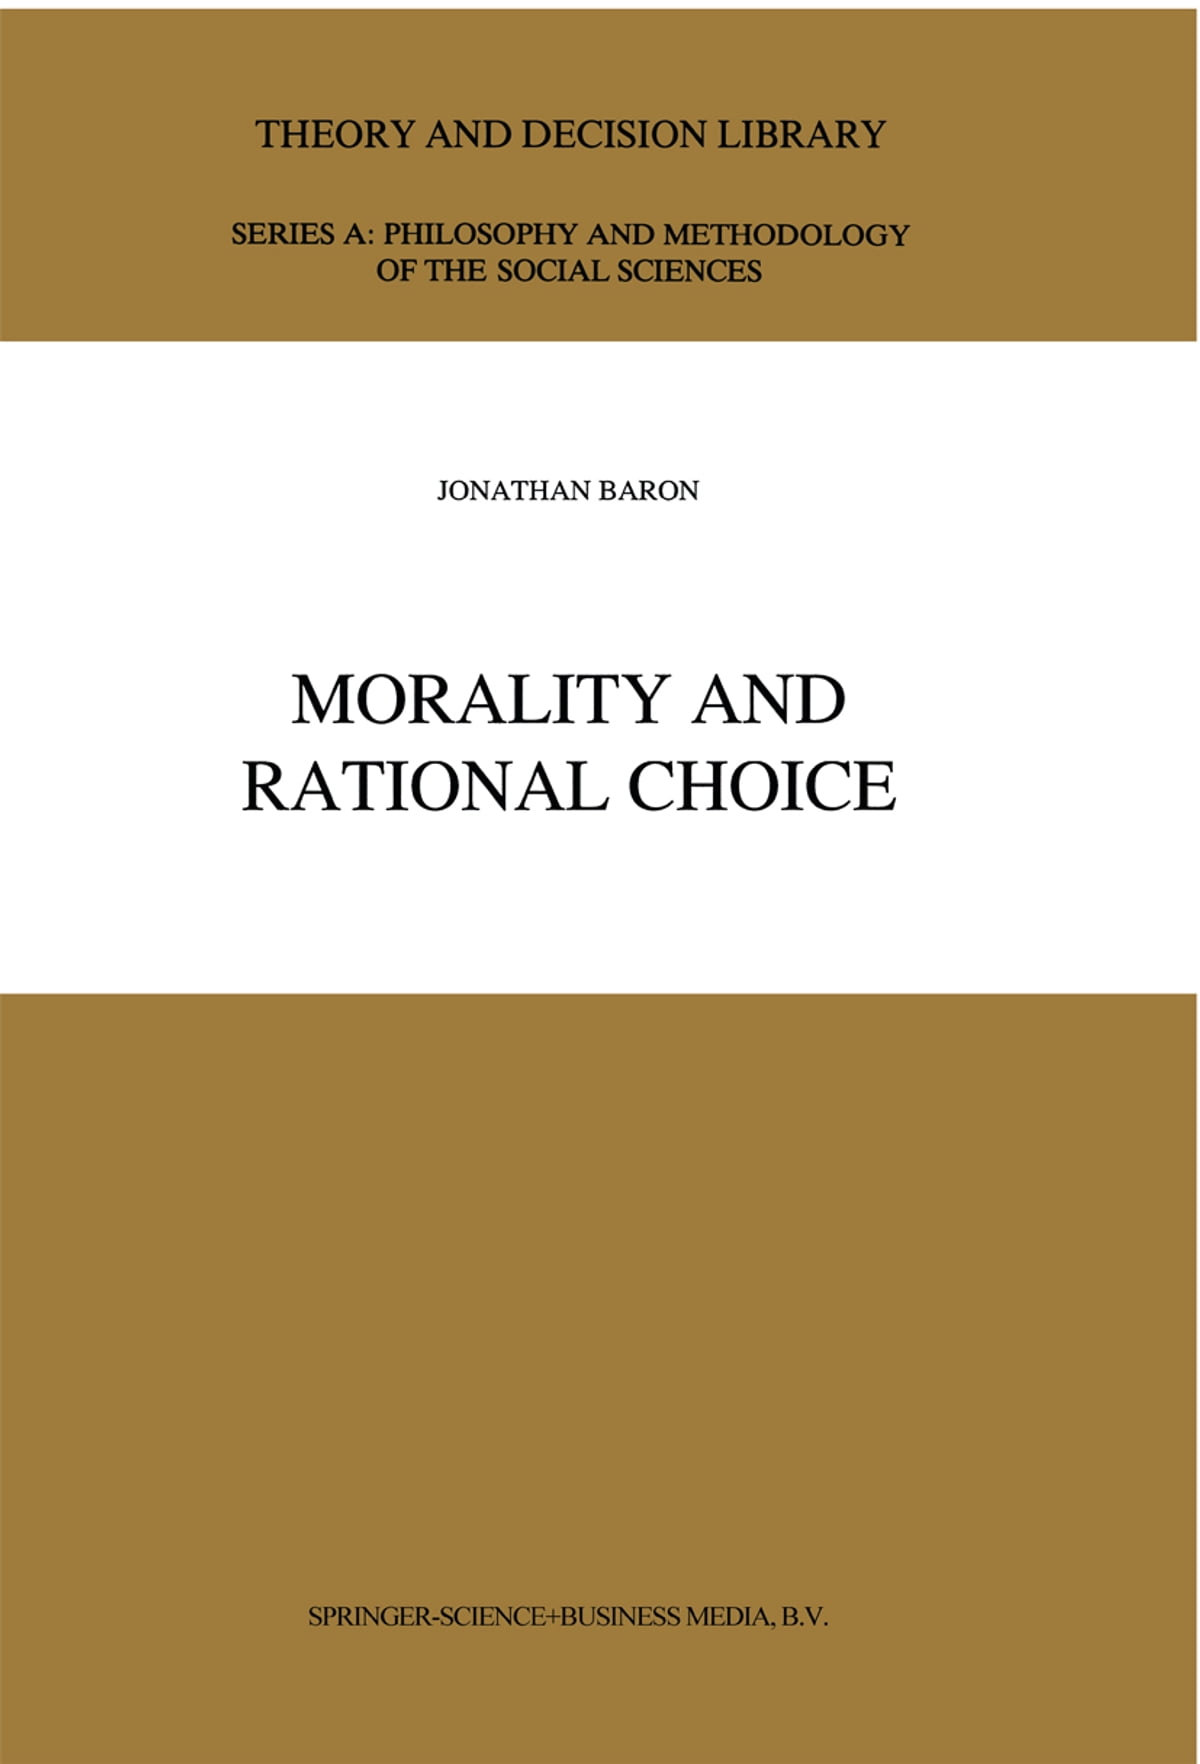 public philosophy essays on morality in politics Download and read public philosophy essays on morality in politics public philosophy essays on morality in politics spend your time even for only few minutes to read.